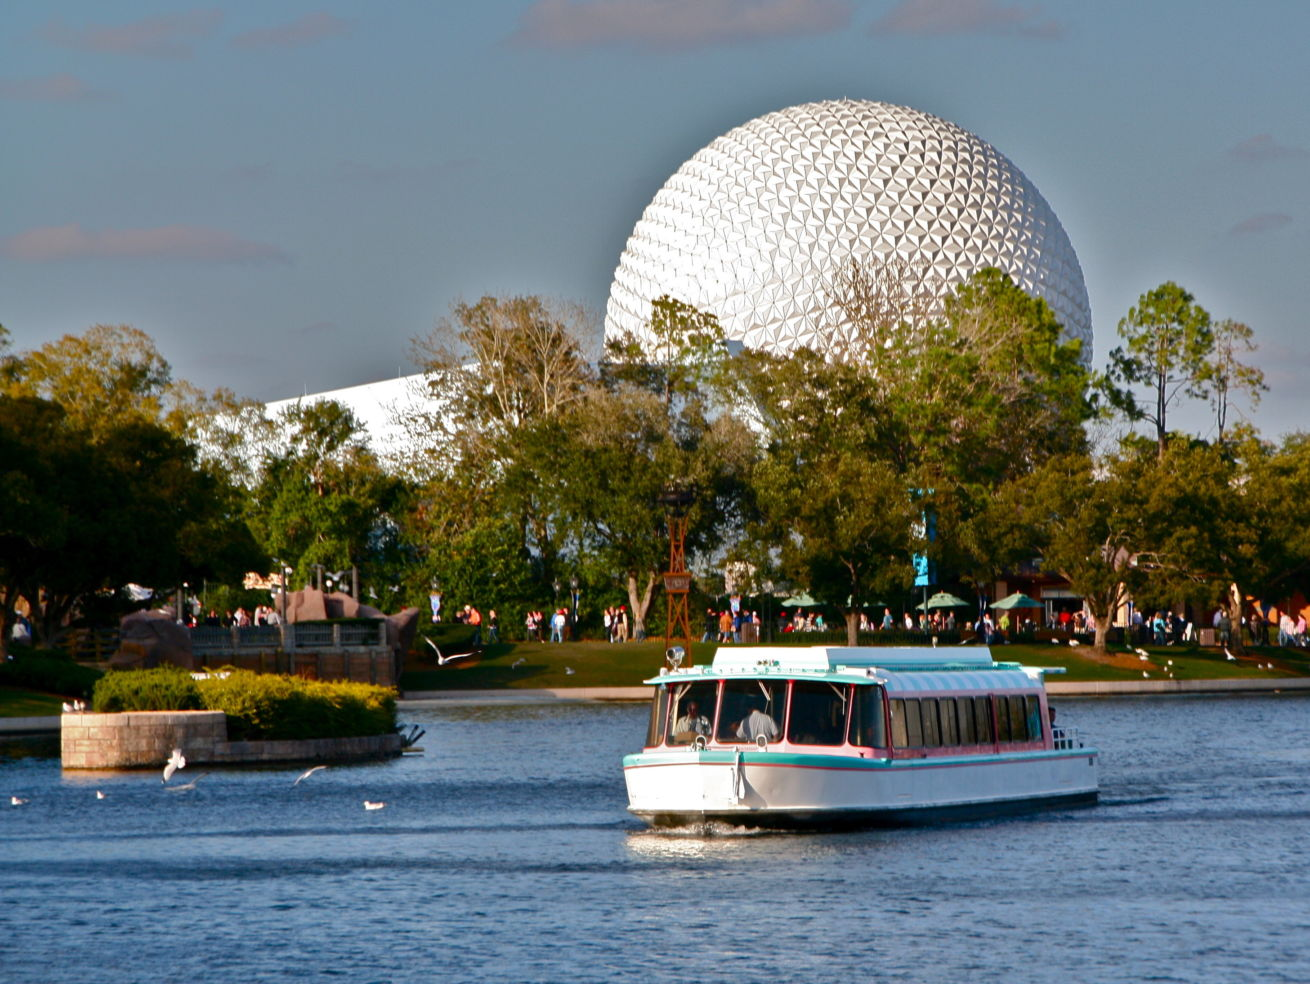 EPCOT in Walt Disney World Orlando, Florida